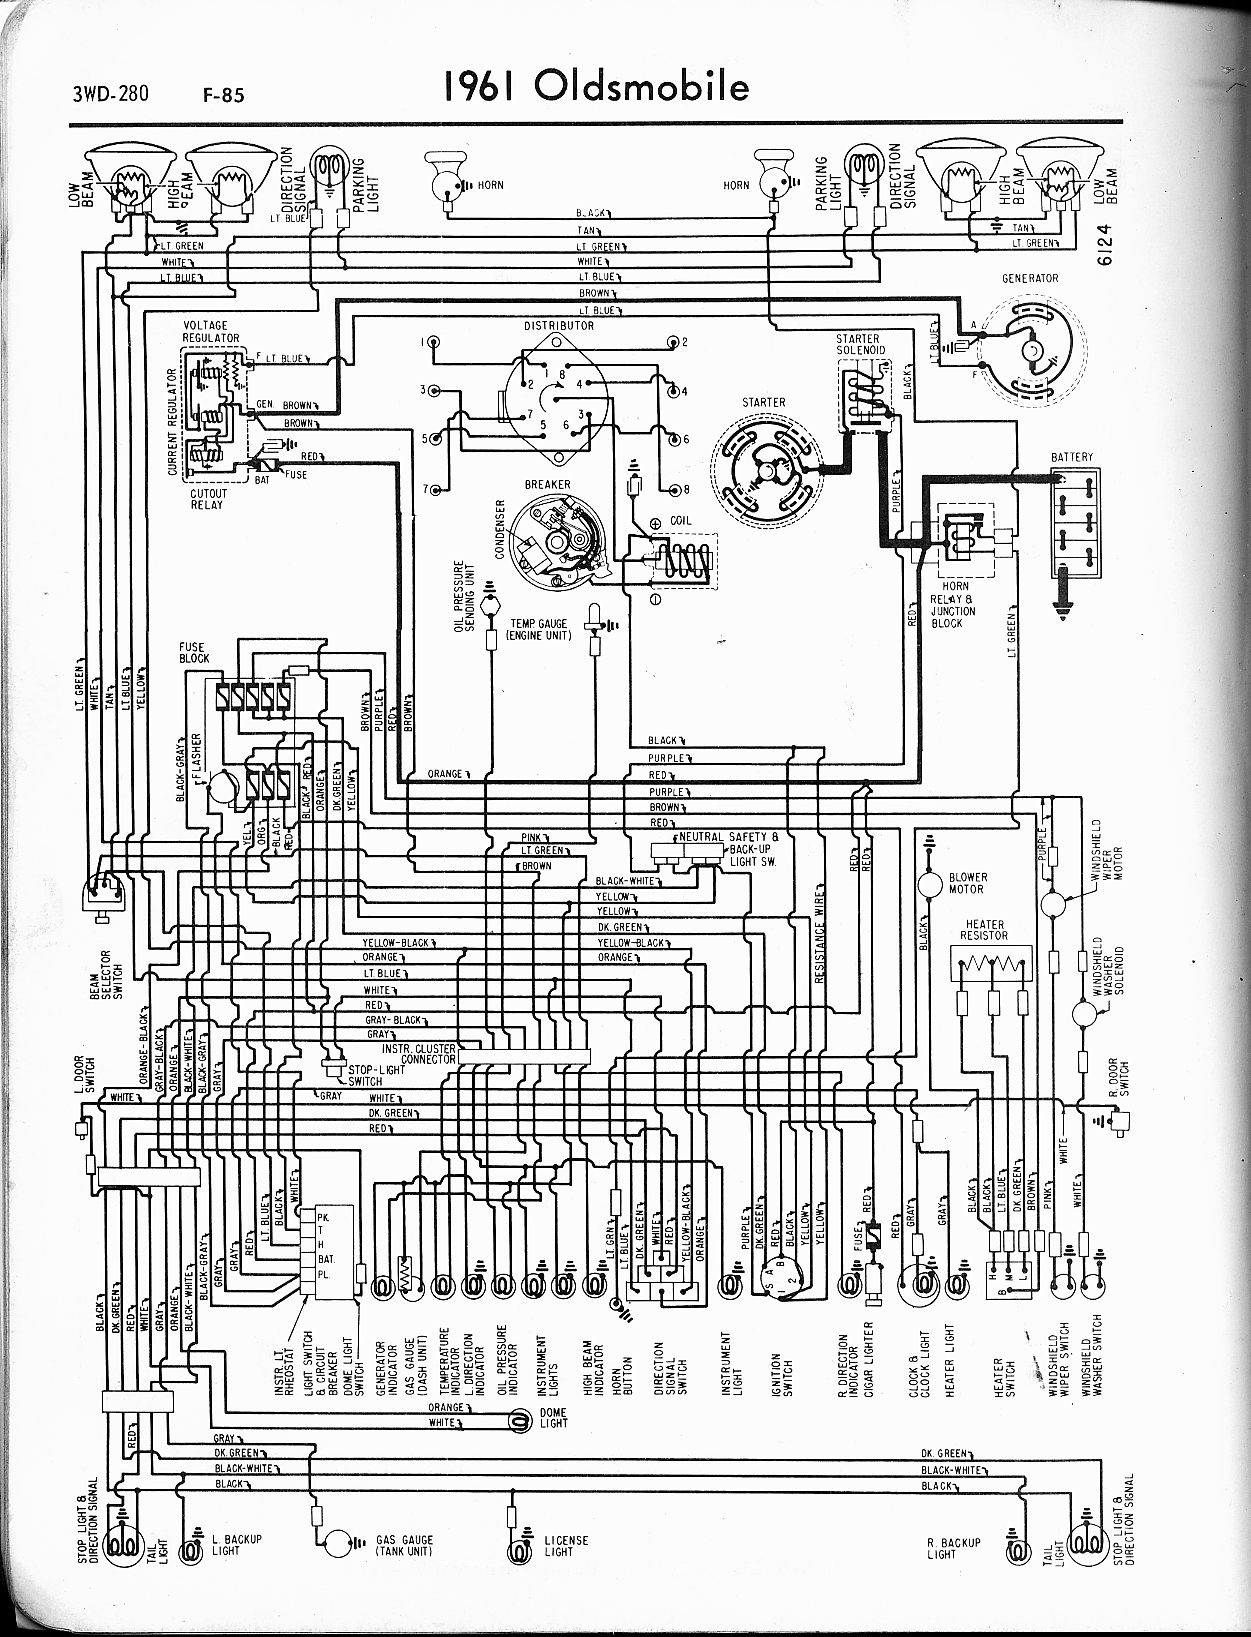 MWire5765 280 oldsmobile wiring diagrams the old car manual project Oldsmobile Aurora Power Steering Line at panicattacktreatment.co